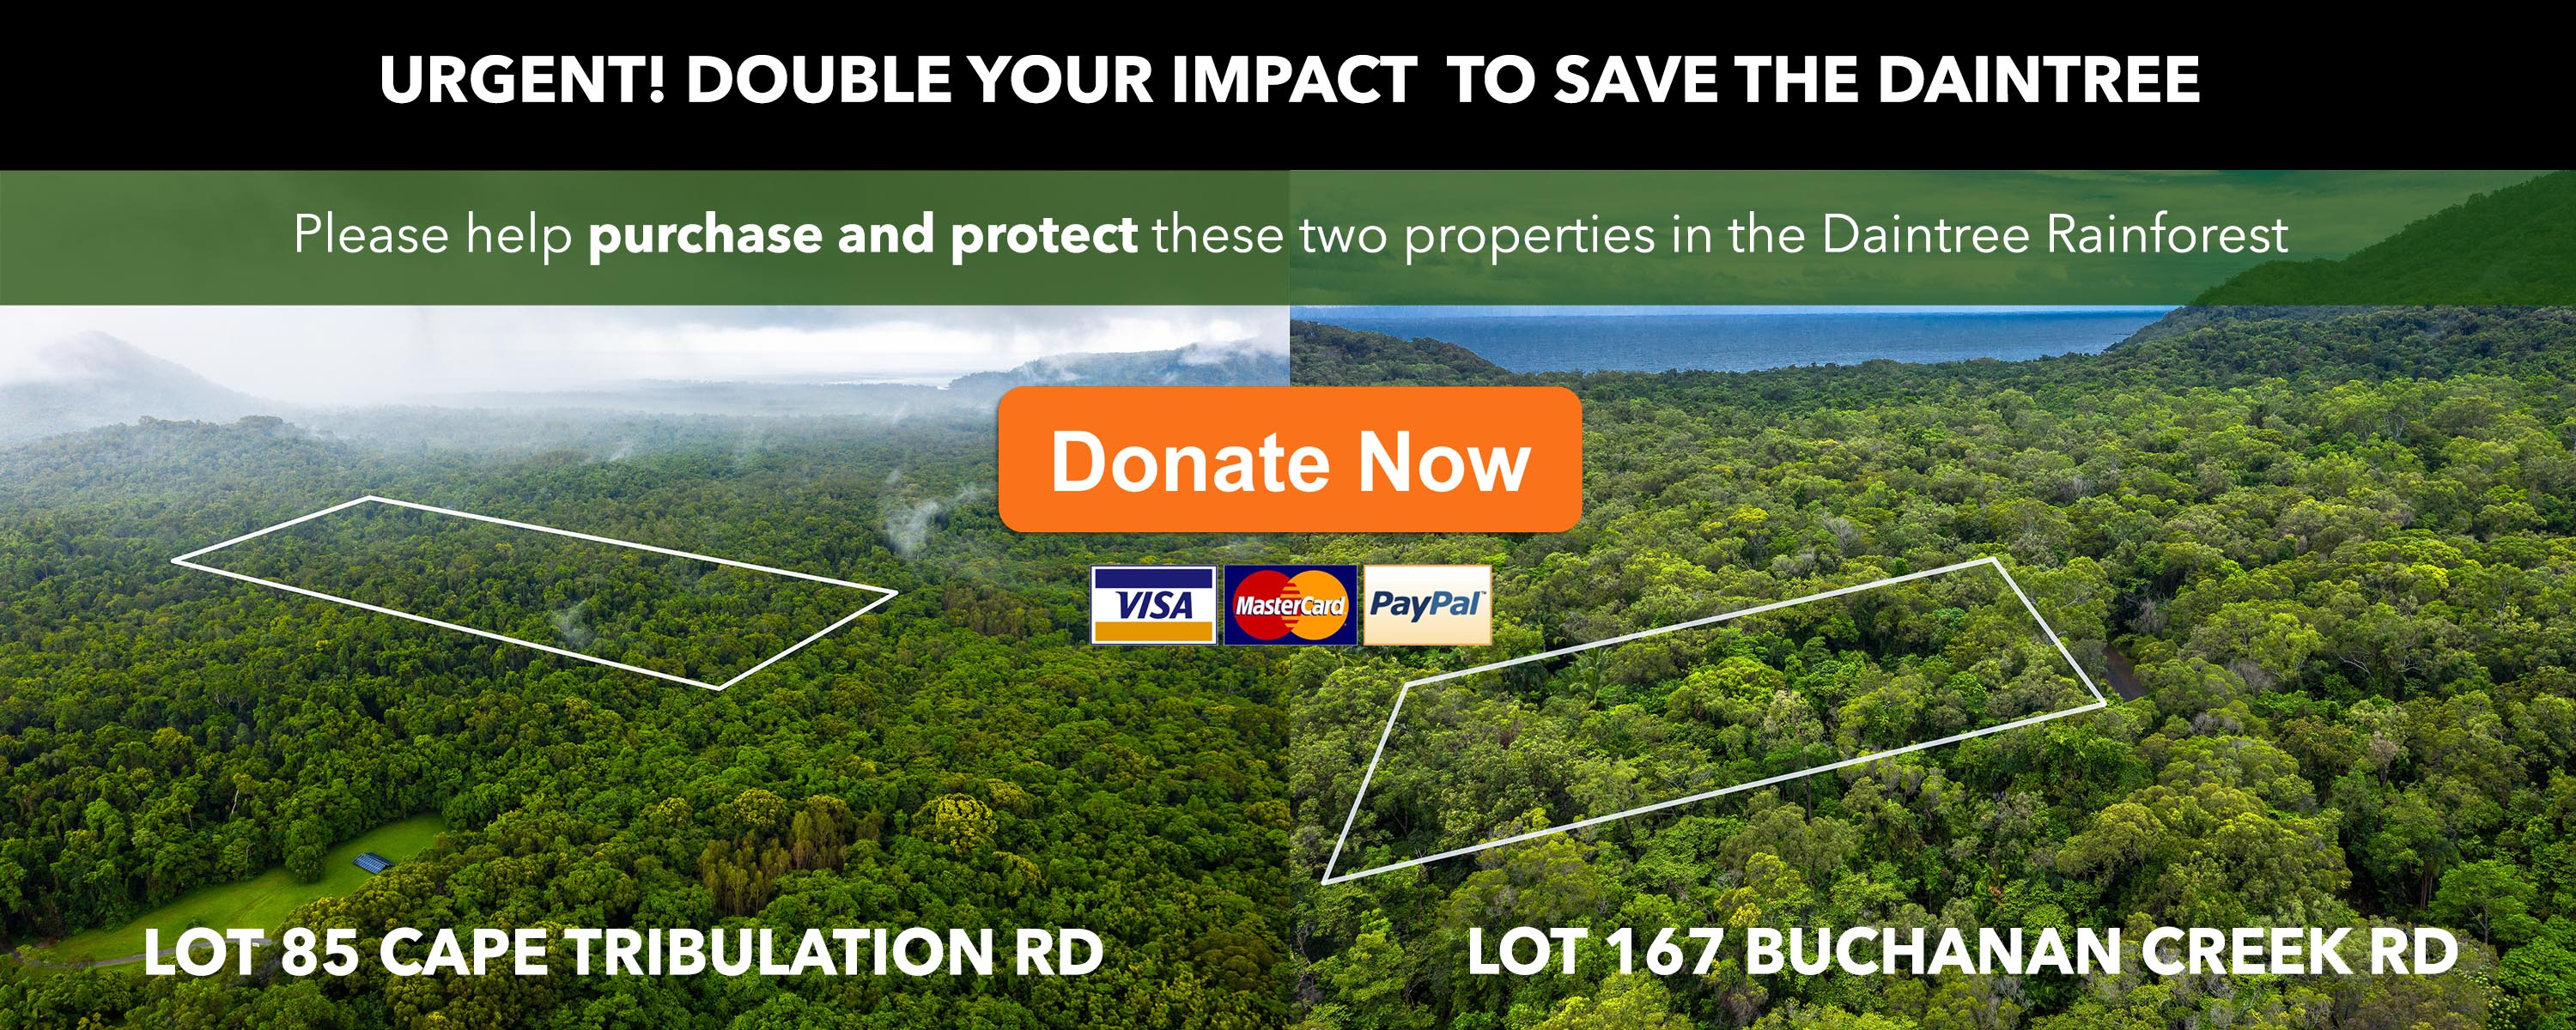 Save the Daintree Appeal